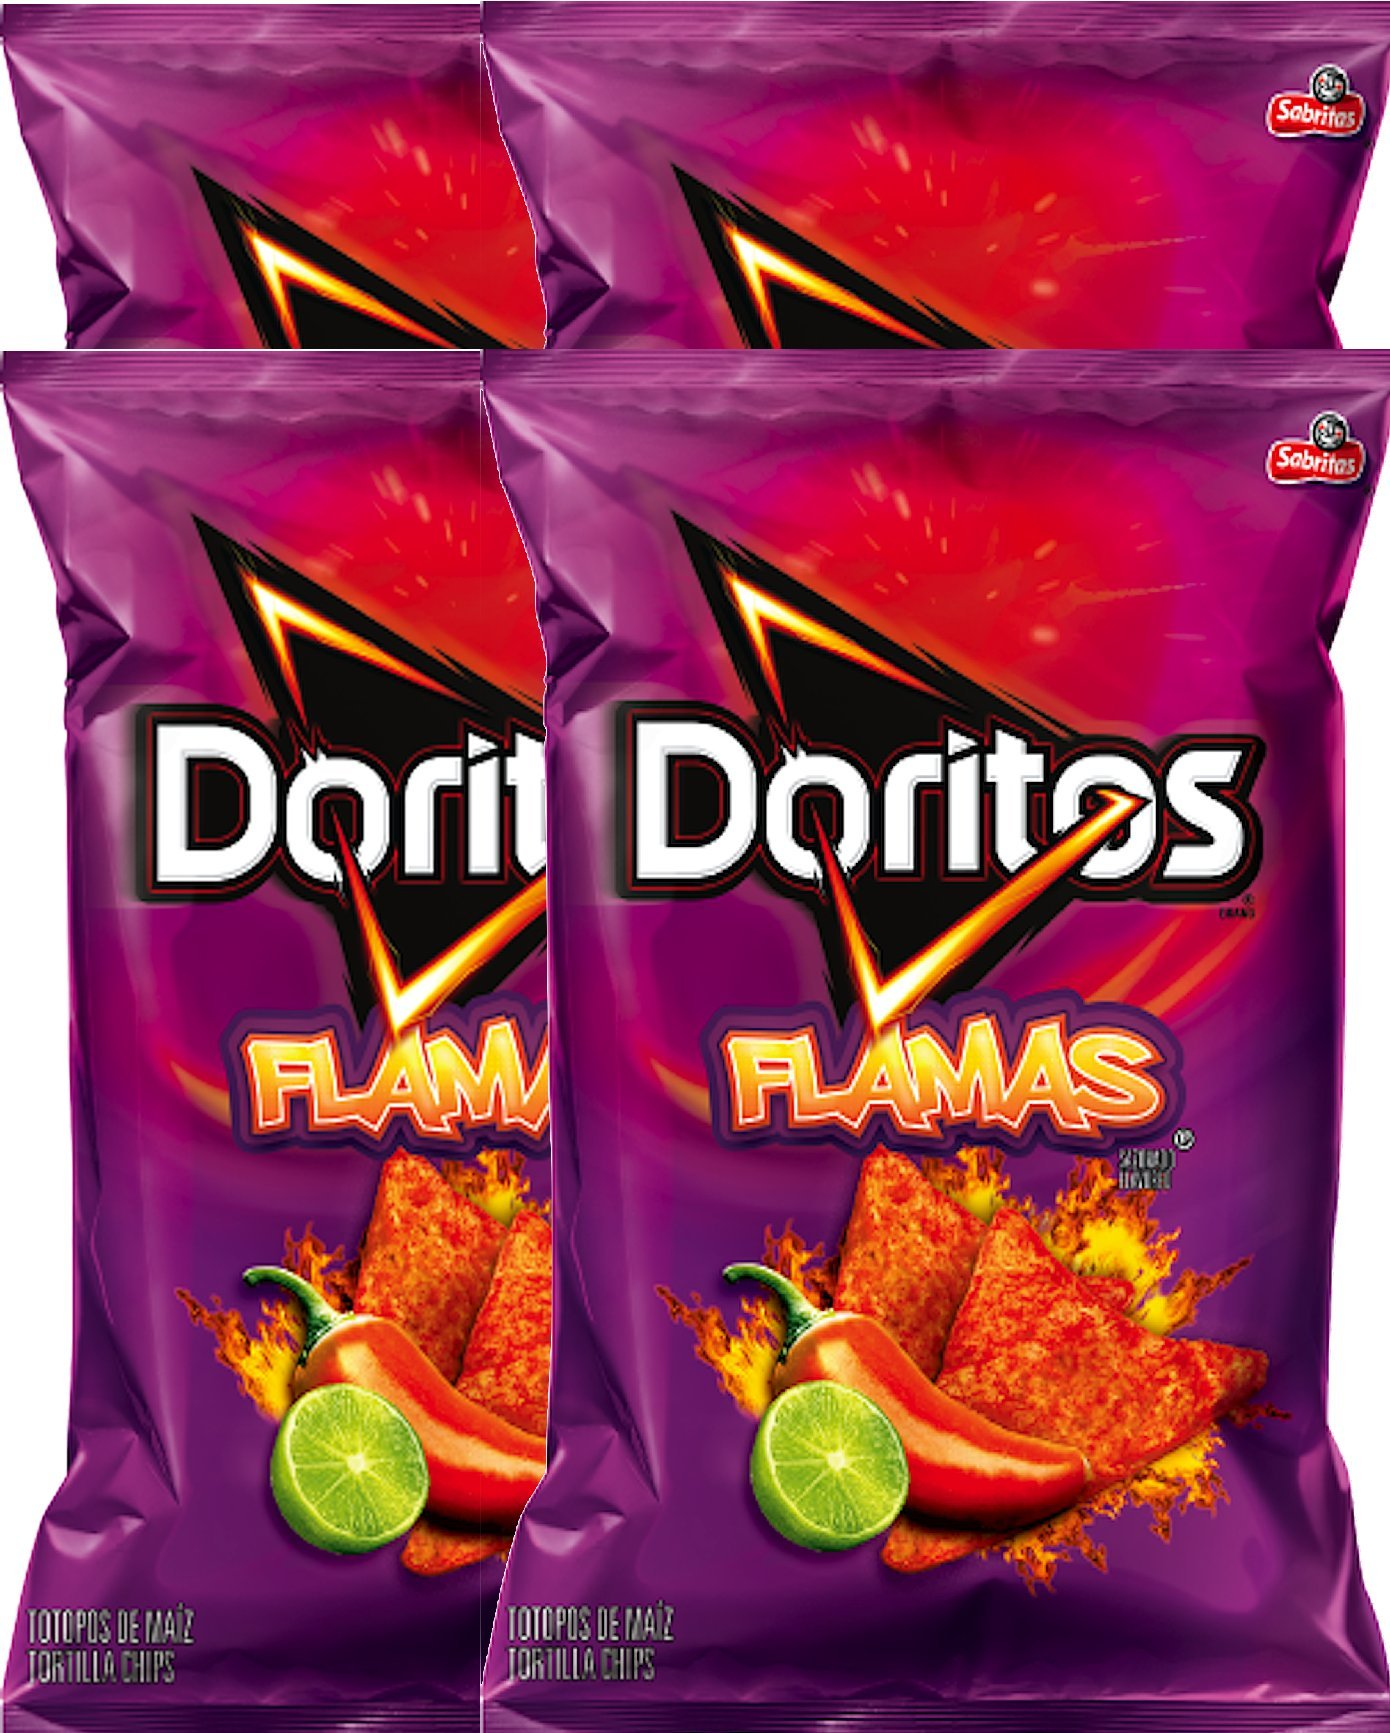 Doritos Flamas Flavored Tortilla Chips Net Wt 10 Oz Snack Care Package (4)